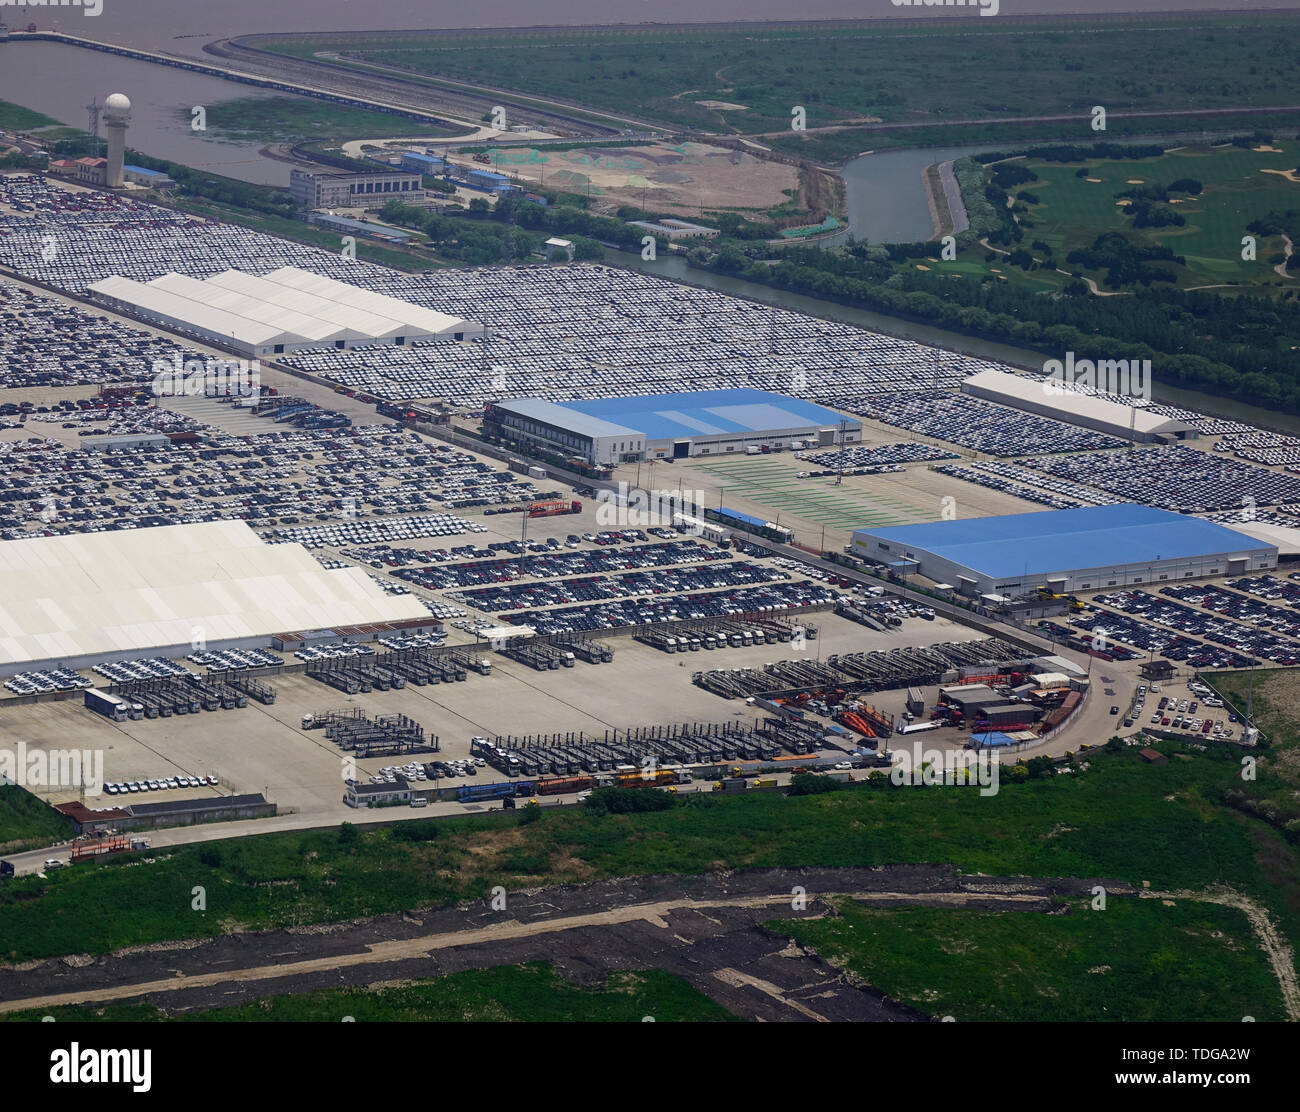 New cars from the car factory parked at the port waiting for export to the country as ordered. - Stock Image